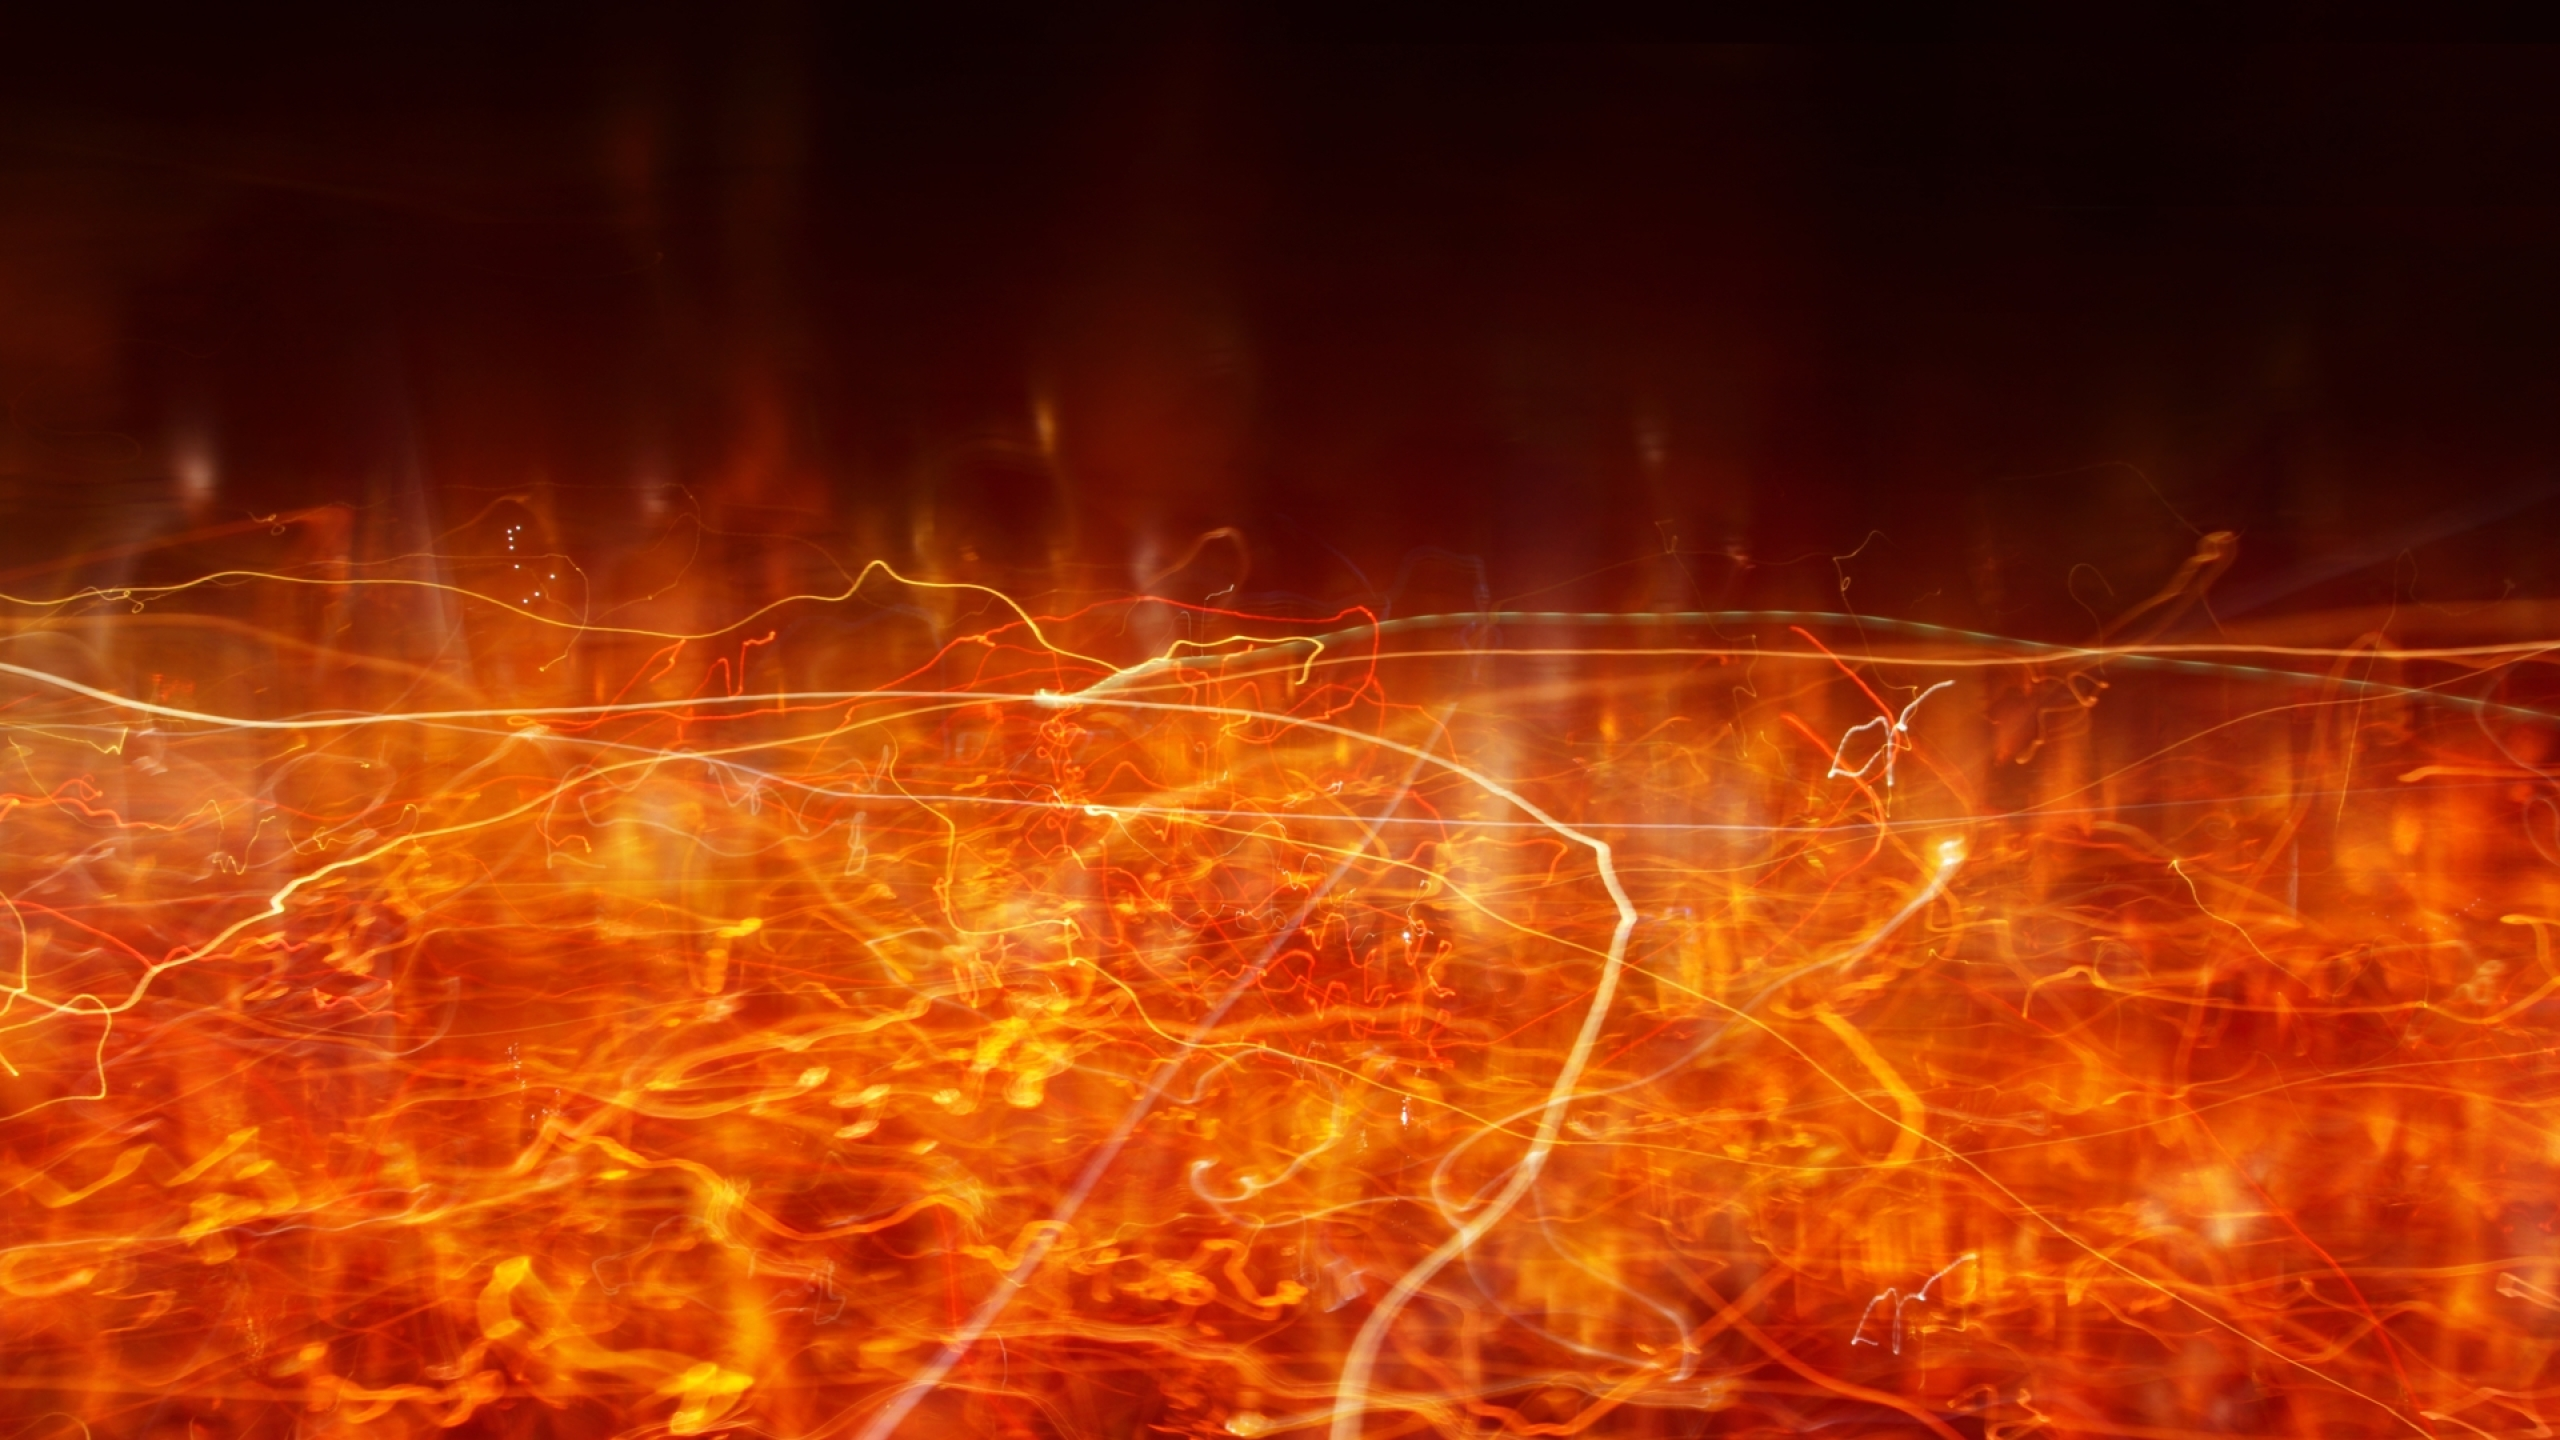 2560x1440 surface, fire, background 1440P Resolution ...